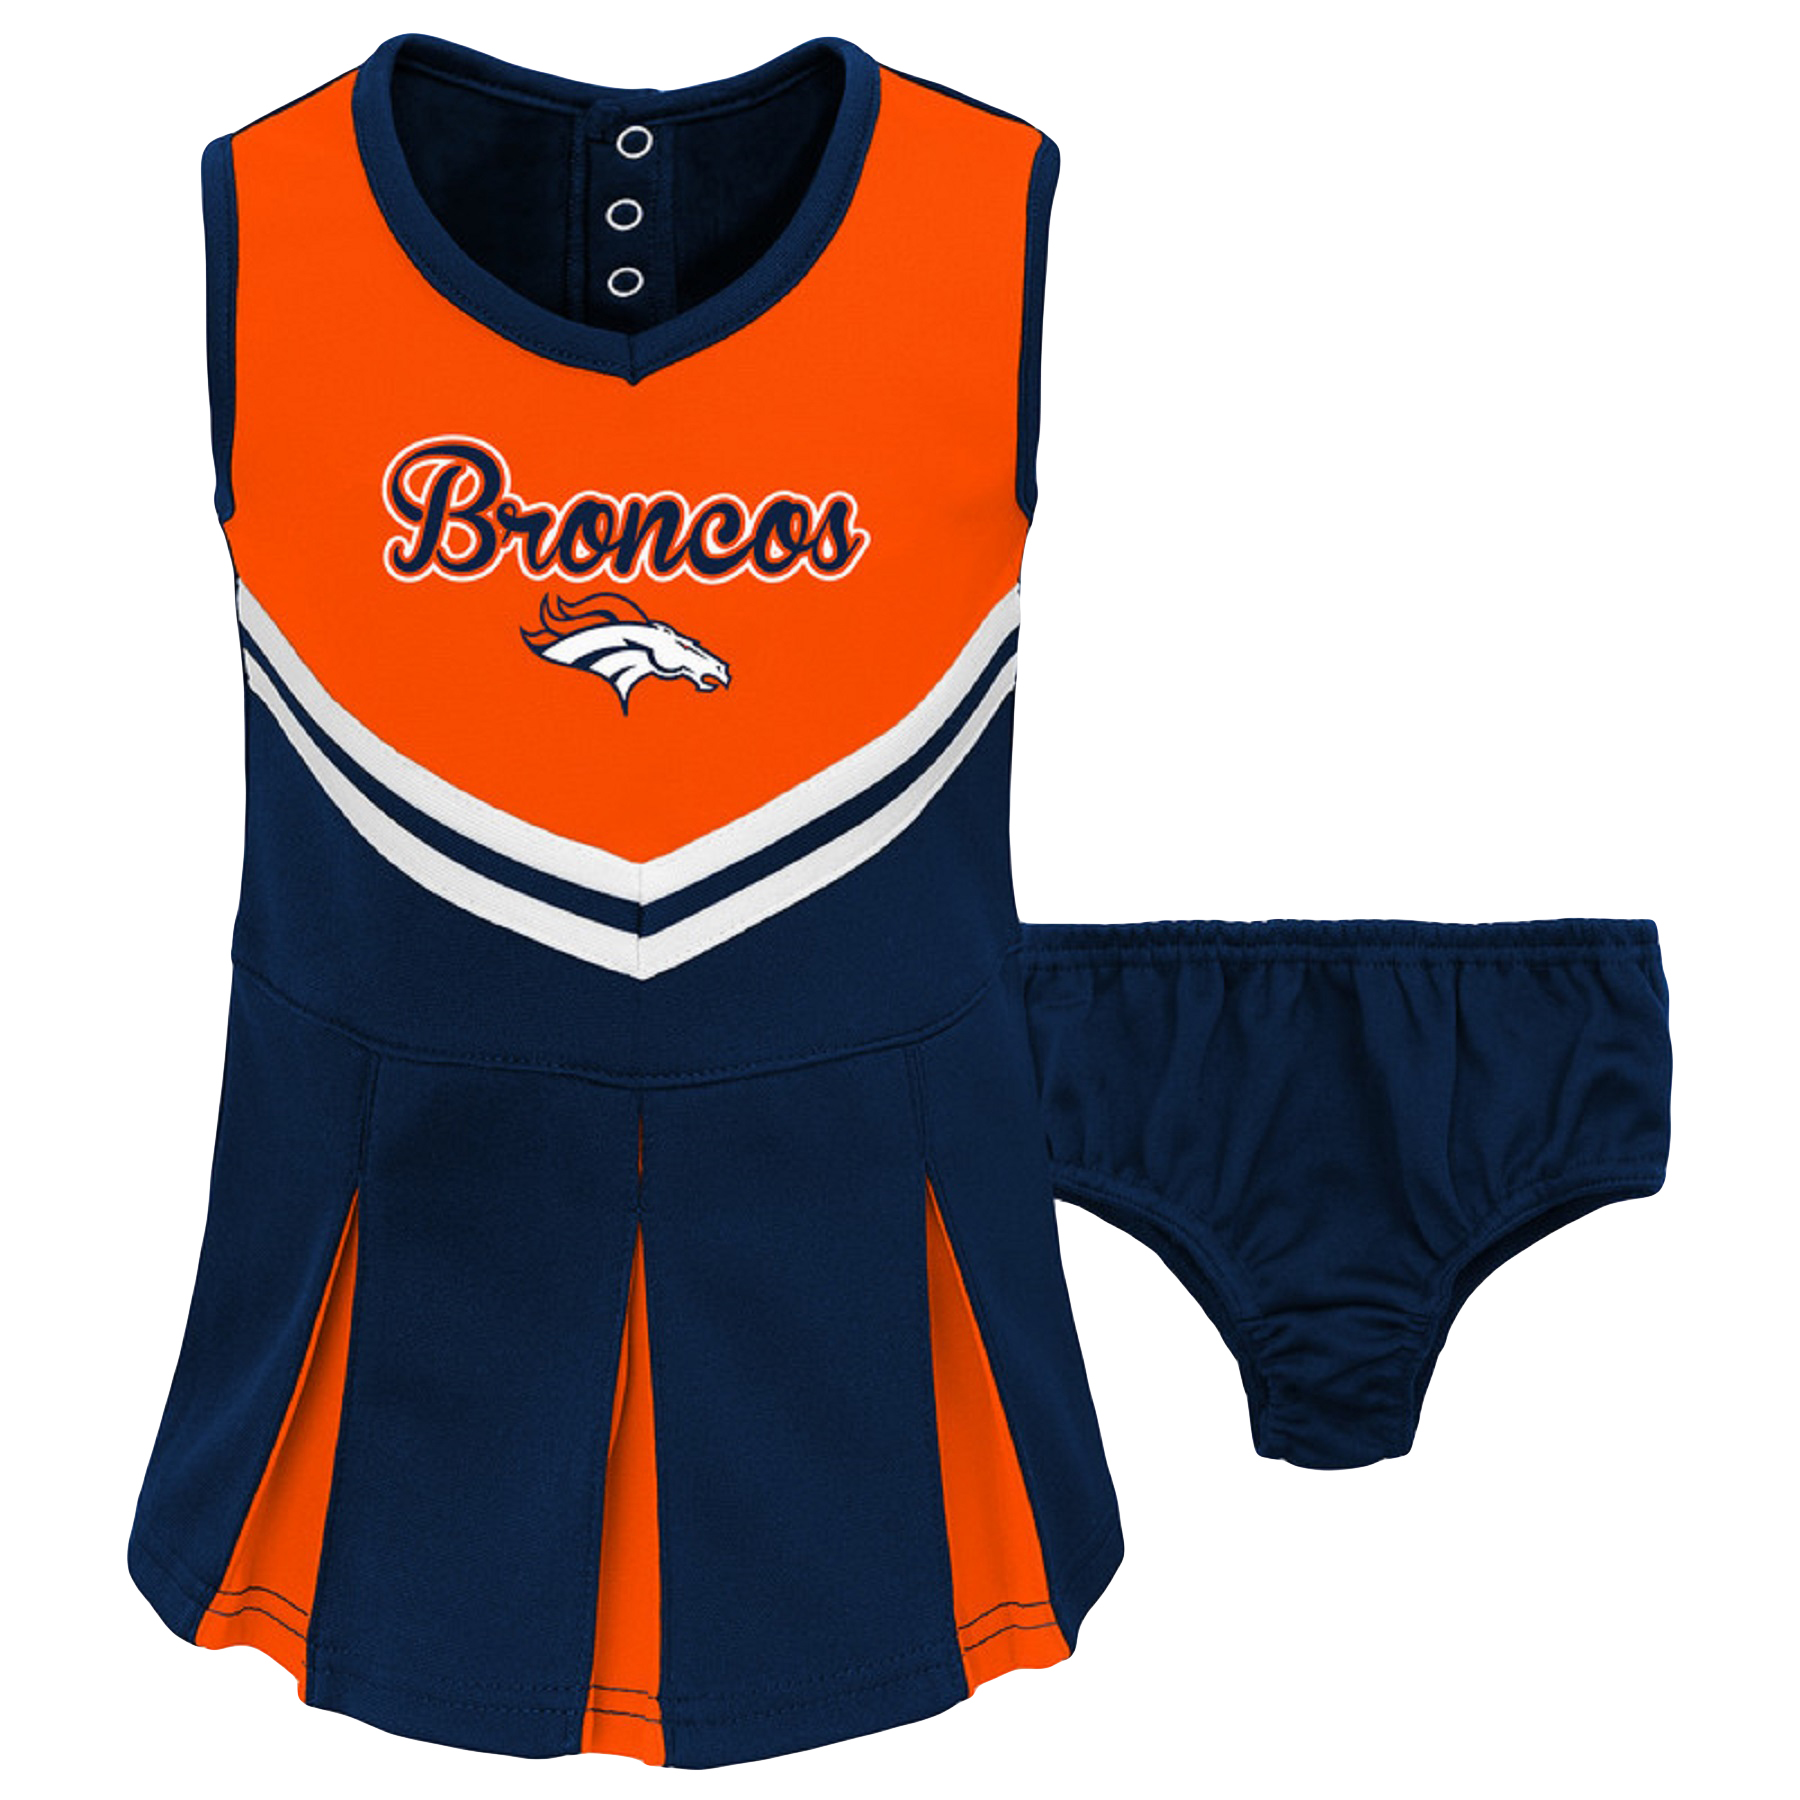 Toddler Orange/Navy Denver Broncos Cheerleader Dress & Bloomers Set